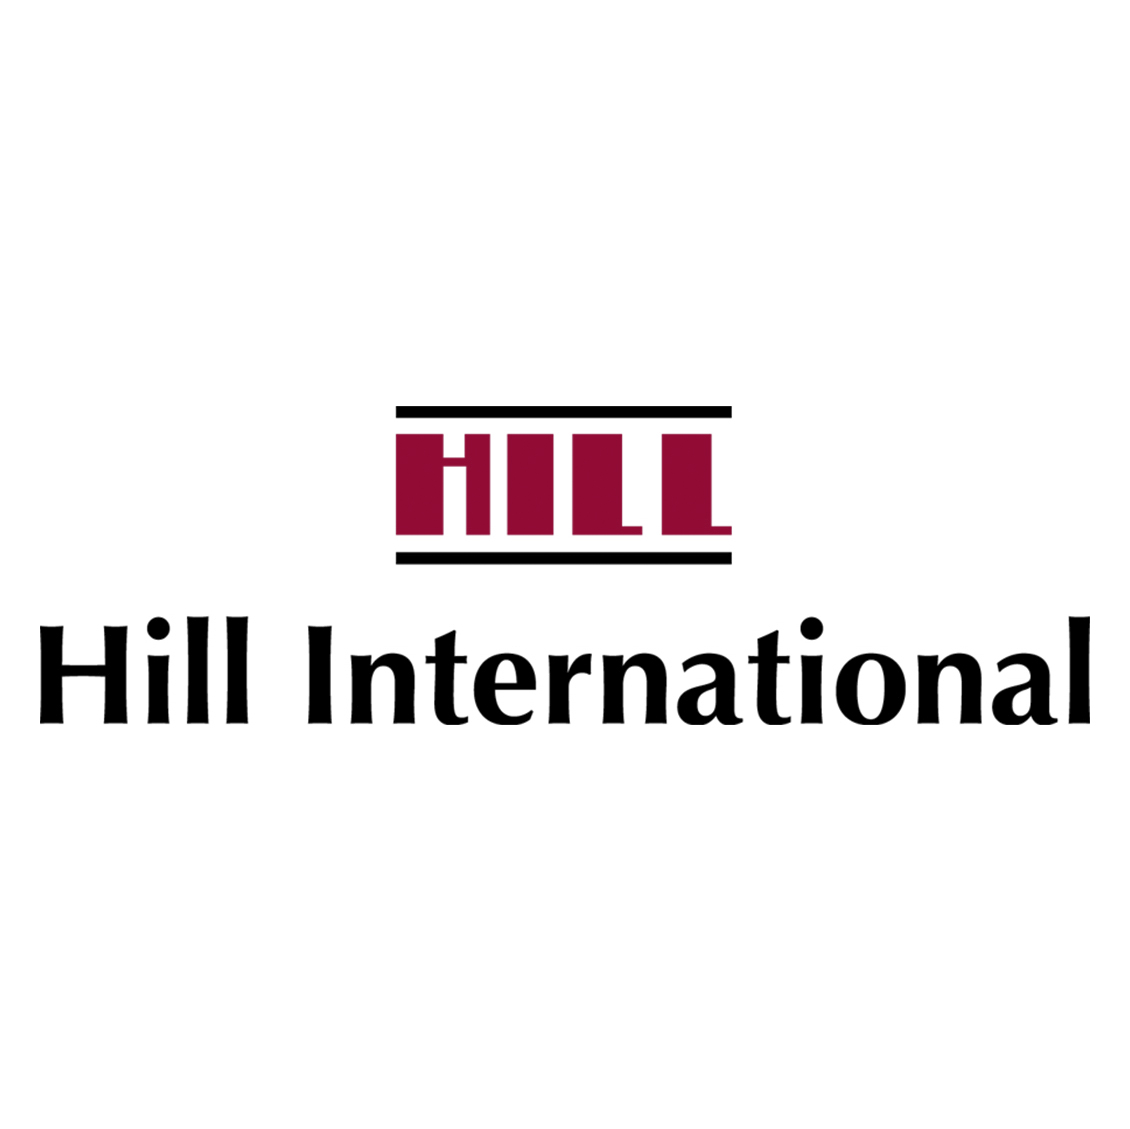 Hill Hill International copy